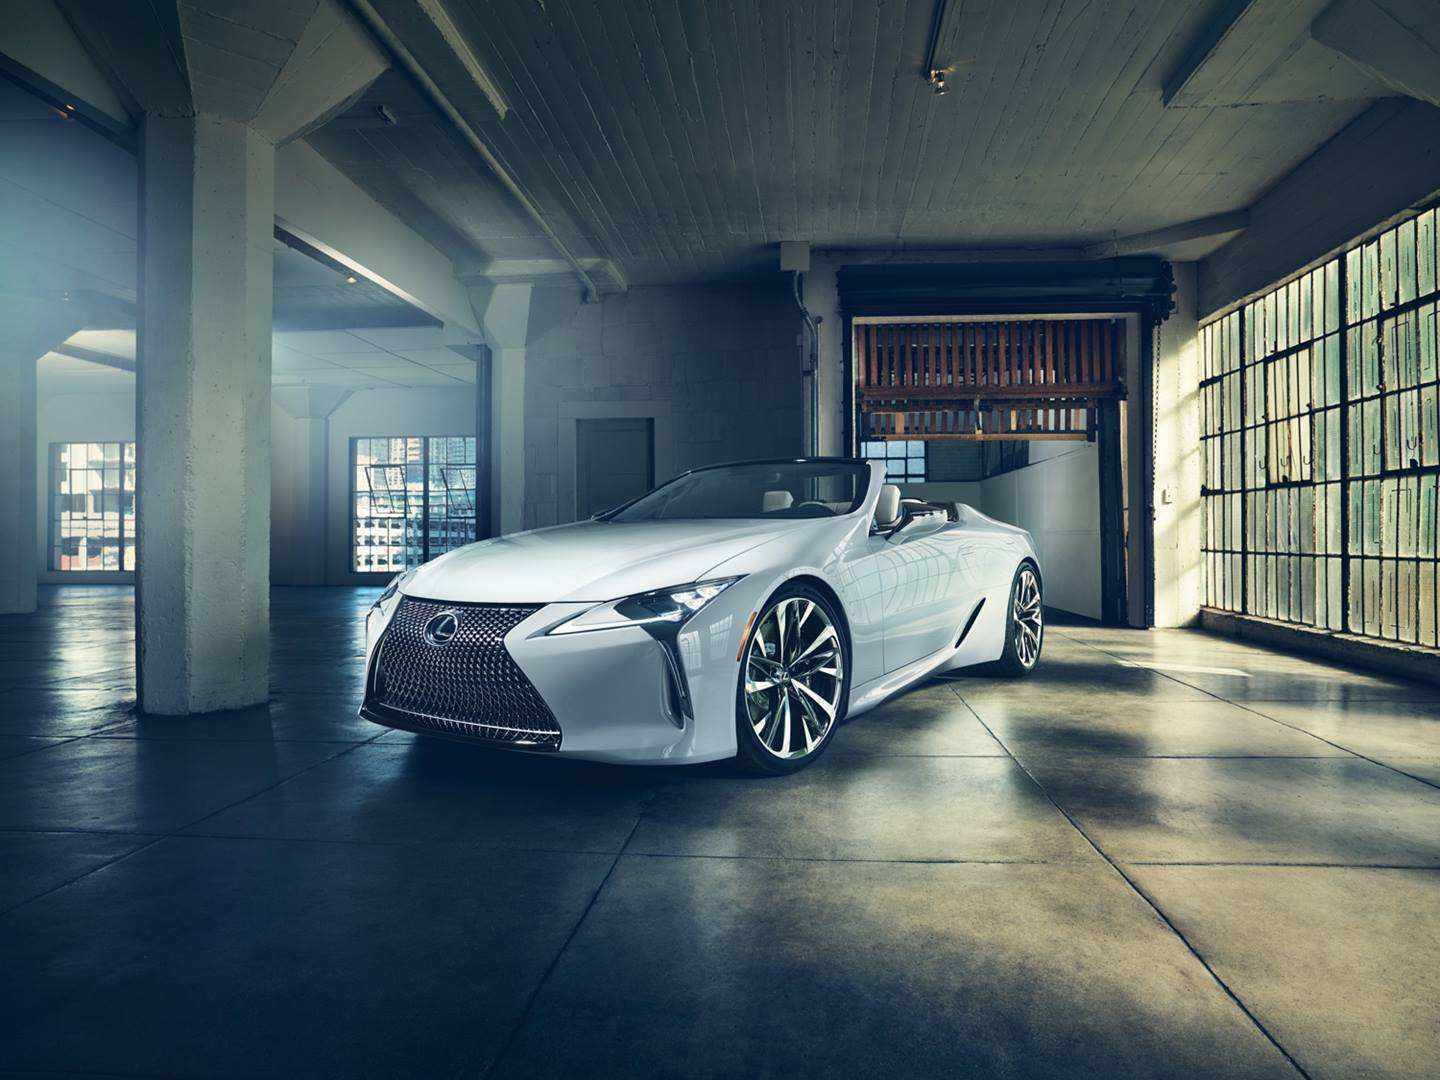 26 Best Review Lexus Convertible 2020 Specs and Review for Lexus Convertible 2020